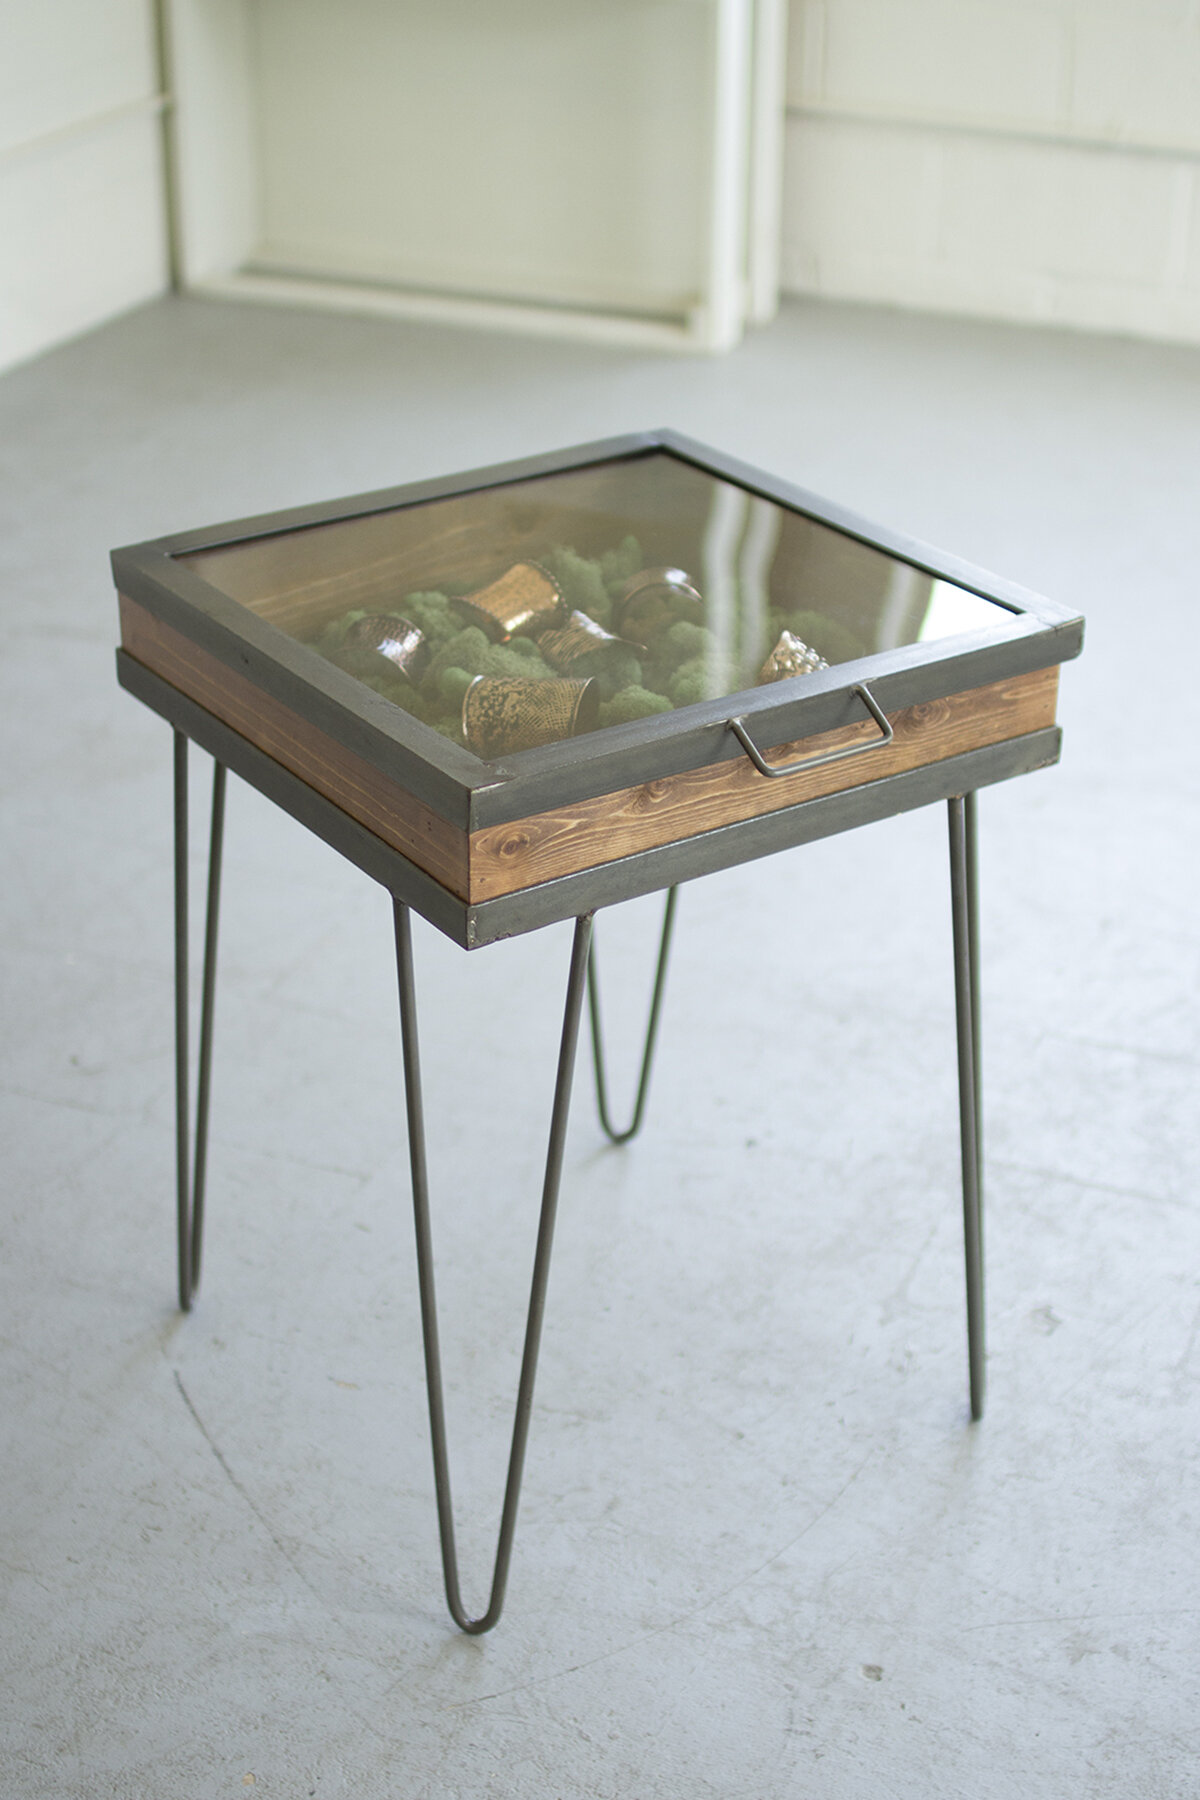 Charmant Kalalou Display Table With Hinged Glass Top | Wayfair